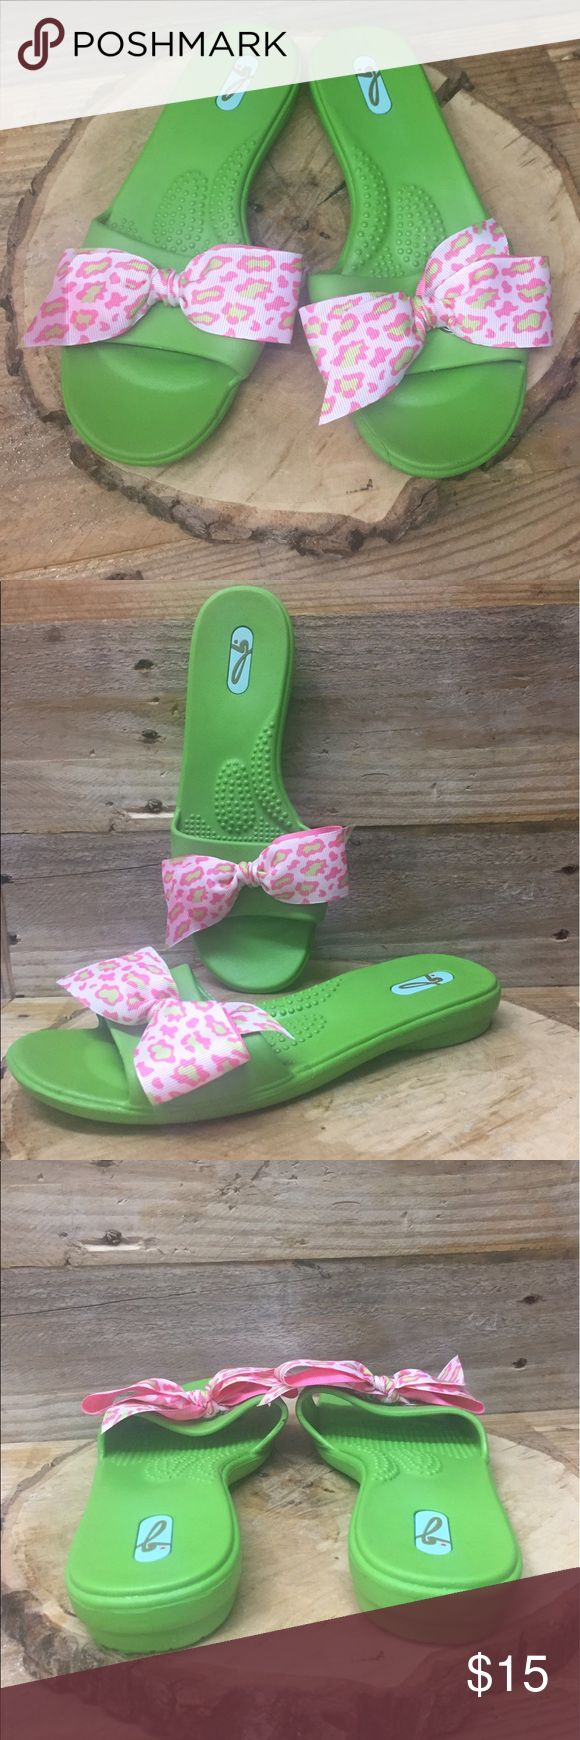 Oka Bee Green Sandals Pink Bow These sandals are eco friendly and recyclable . Made in the USA . Size Small fits 5.5-6. Shoes that you love shoe is 9in from heel to toe. Preowned and clean. Check out my closet to save on bundles. OKa Bee Shoes Sandals